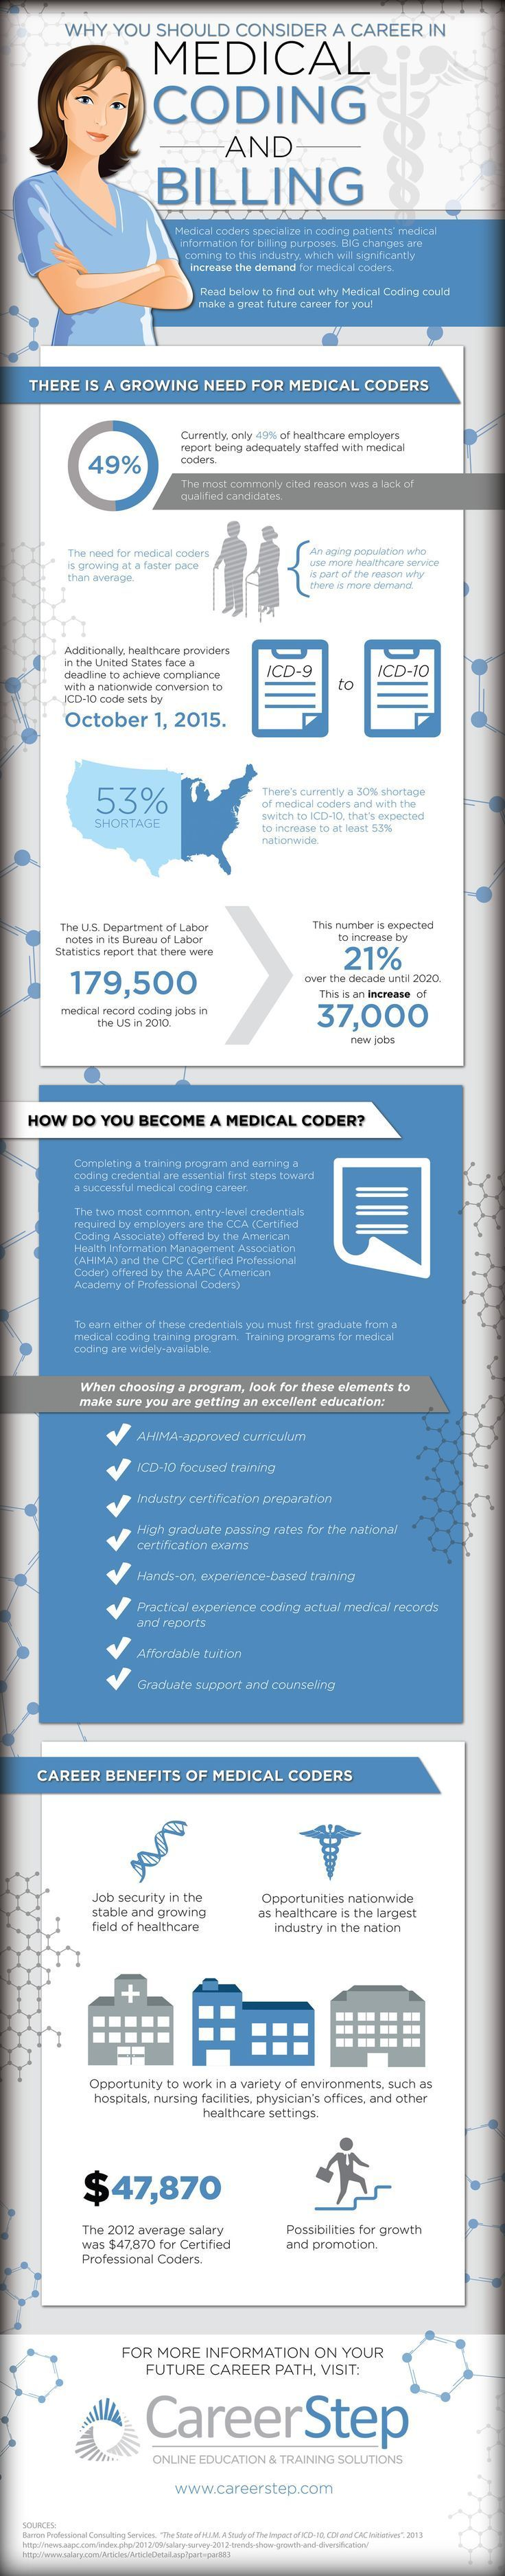 medical billing resumes%0A    Medical Assistant Resume Objective Examples   Job Descriptions  Resume  Examples  Samples  Templates  Career   Resumes   Pinterest   Medical  assistant and